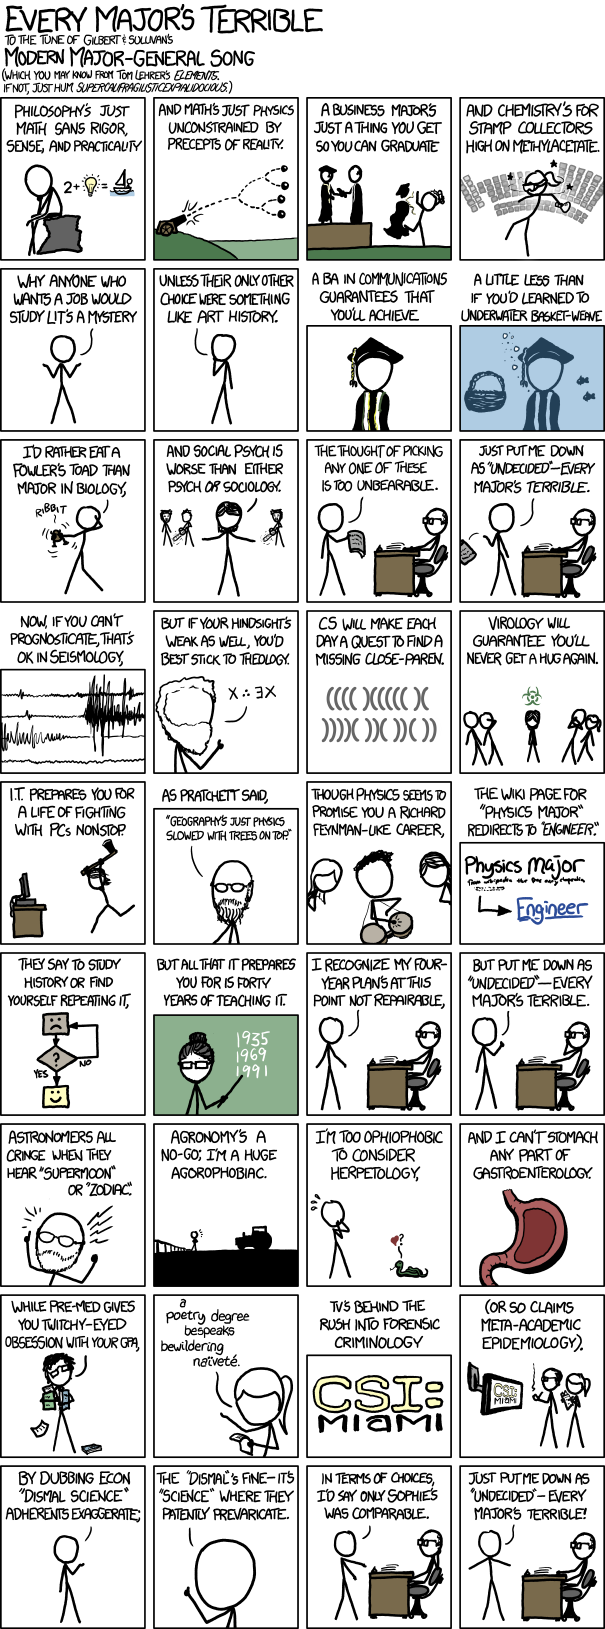 xkcd every major's terrible parody